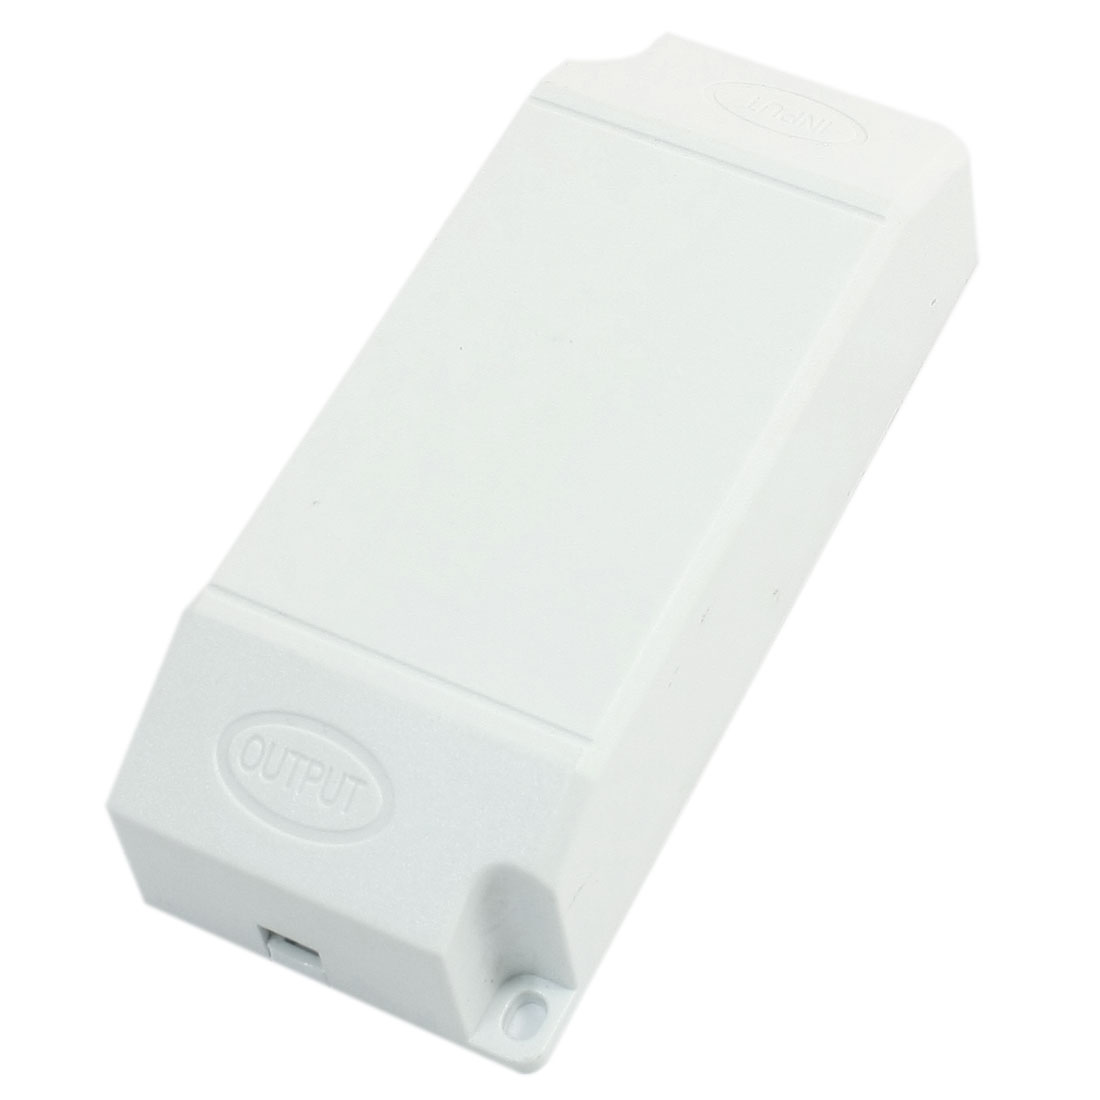 White Plastic 95x40x24mm Enclosure Junction Box Shell for LED Driver